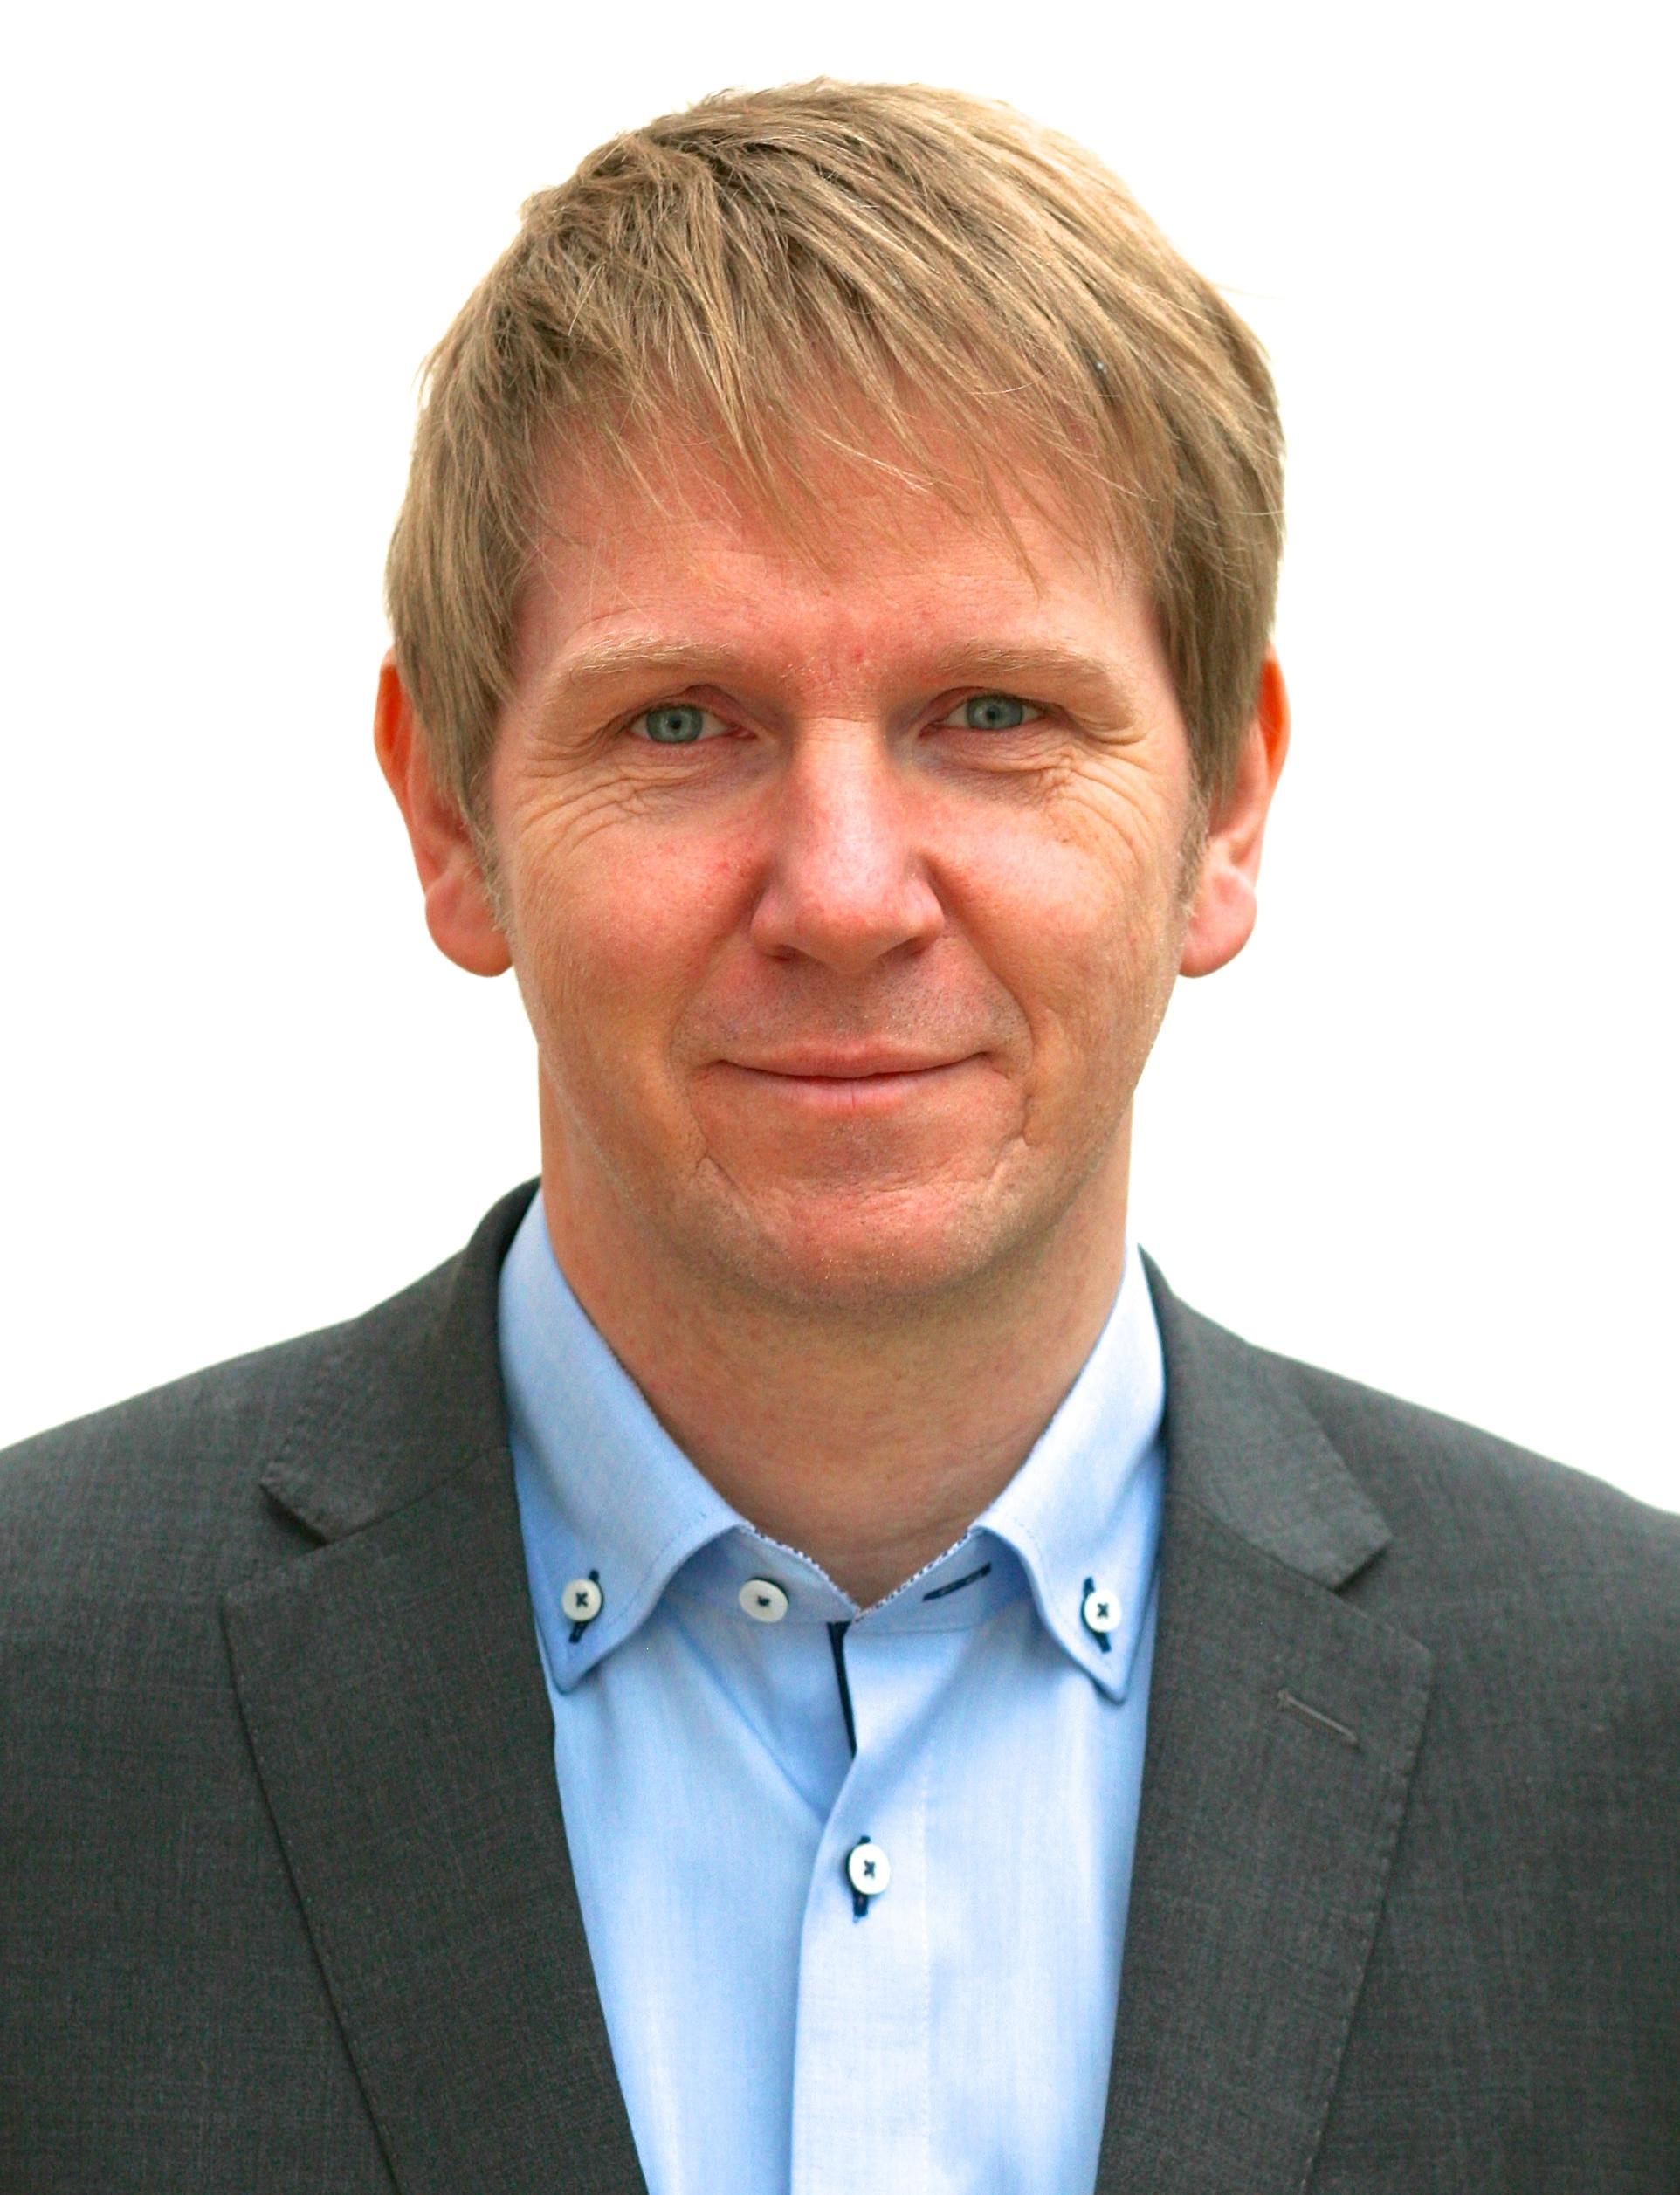 David Aitken - Managing Director at GreeenWorld Technologies